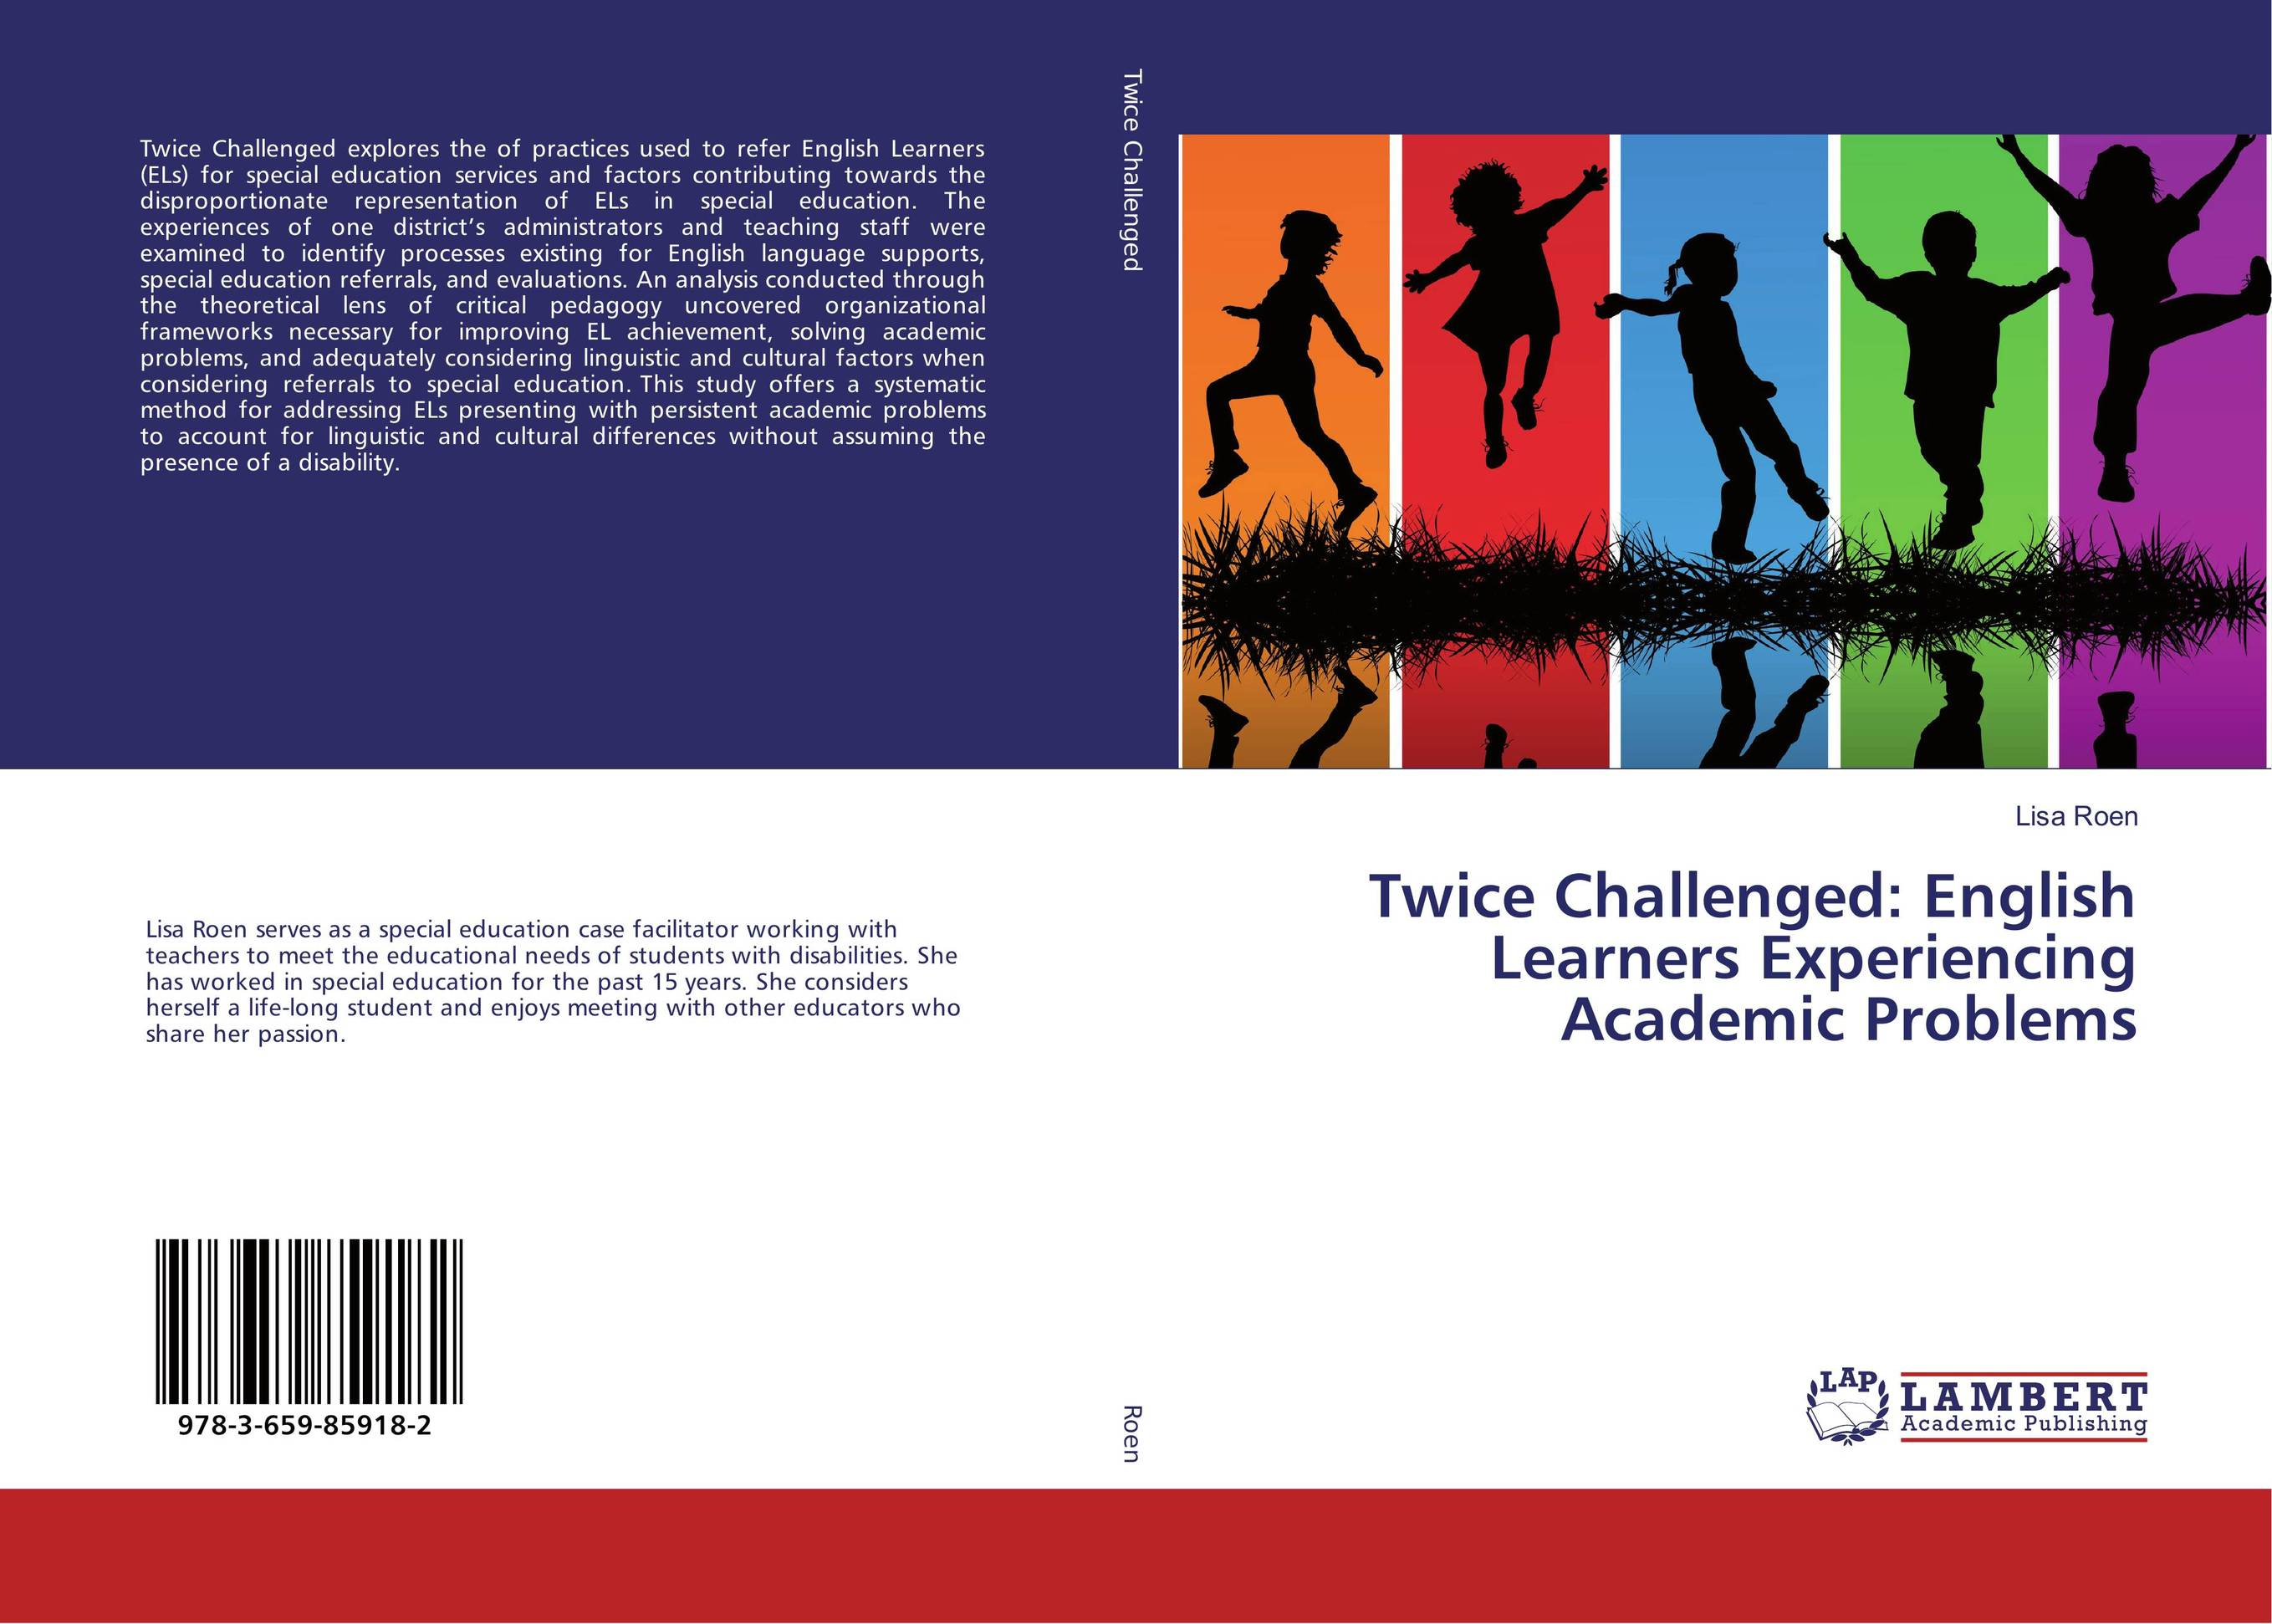 Twice Challenged: English Learners Experiencing Academic Problems camper camper ca555agike75